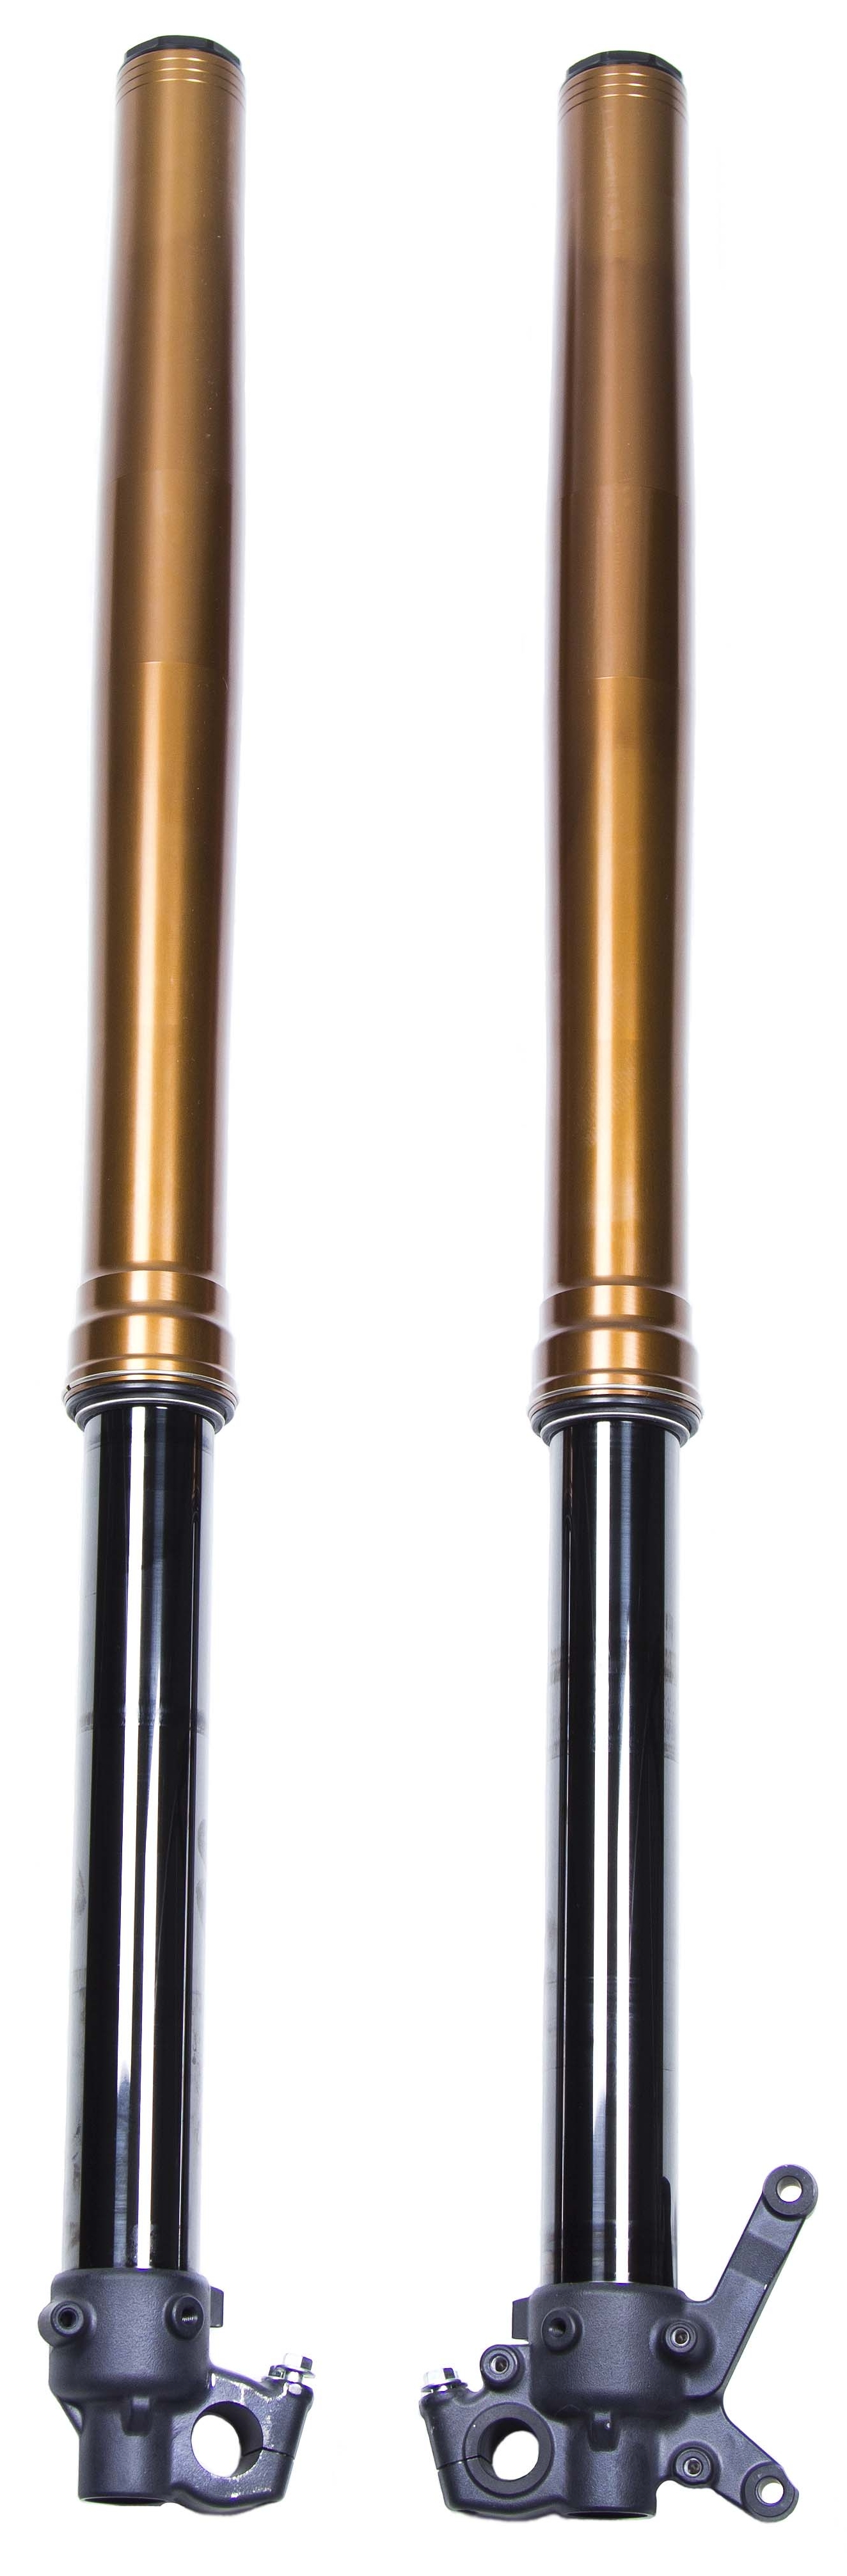 KYB Factory Kit Spring Forks